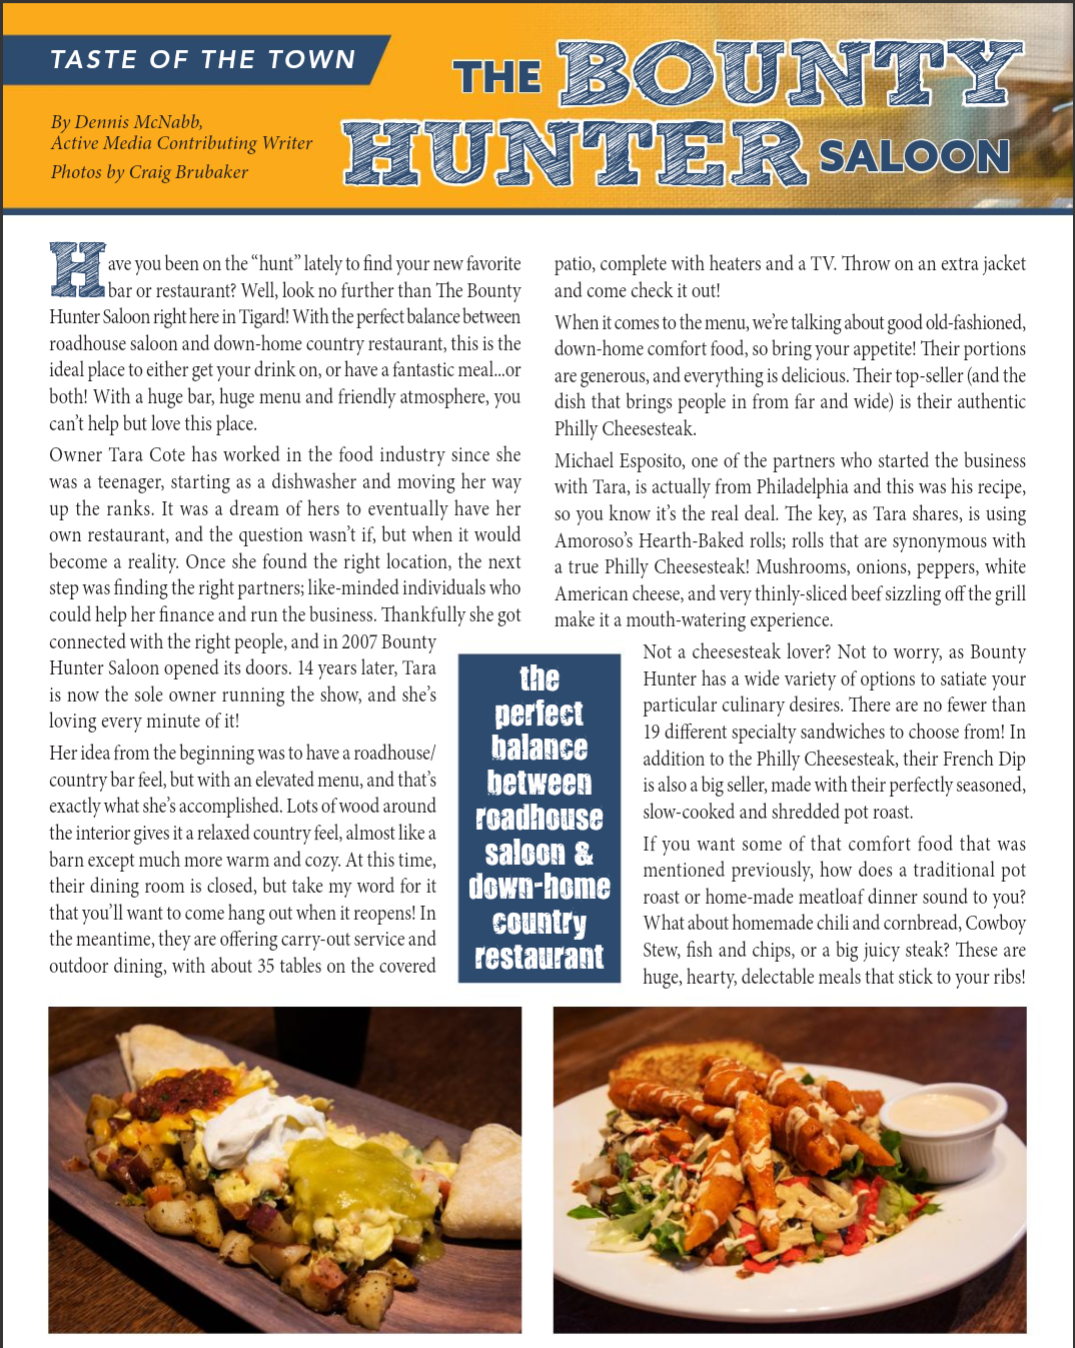 Taste of The Town - The Bounty Hunter Saloon